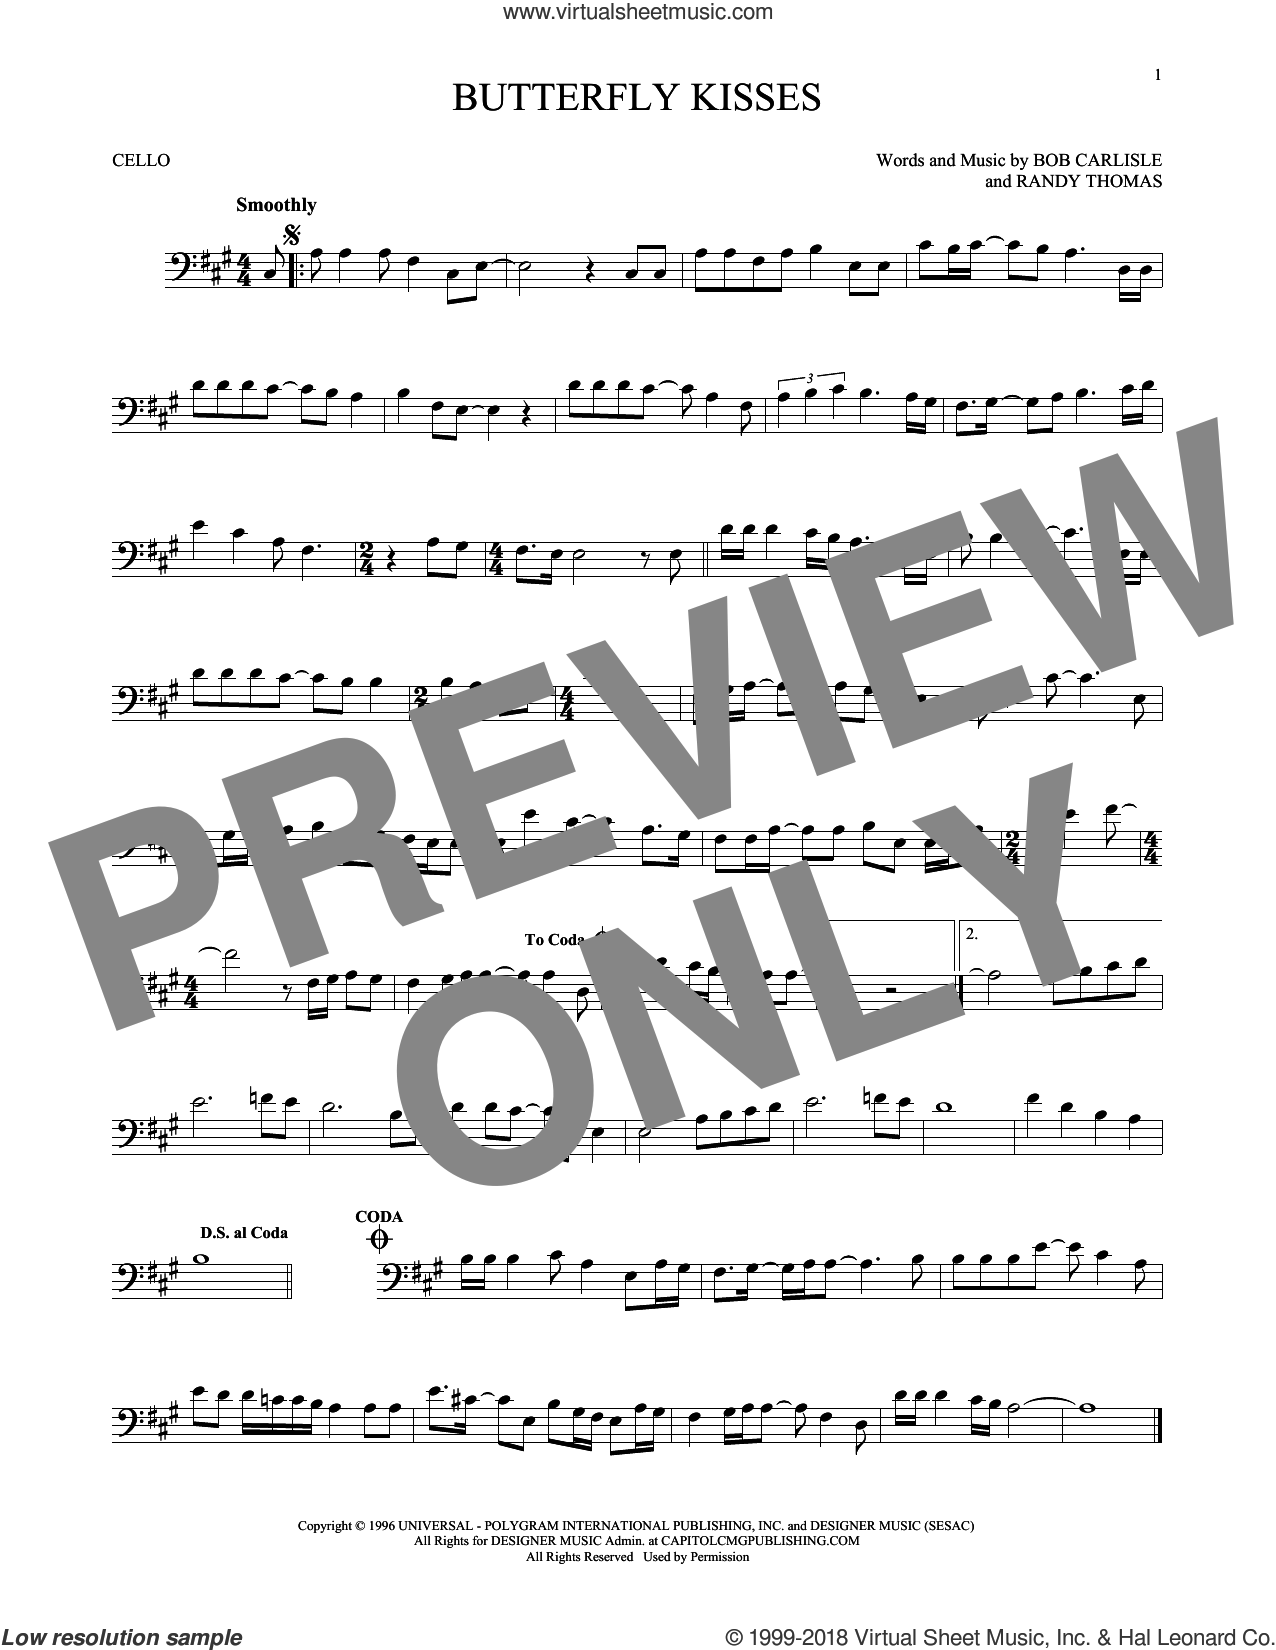 Butterfly Kisses sheet music for cello solo by Bob Carlisle, Jeff Carson and Randy Thomas, wedding score, intermediate skill level